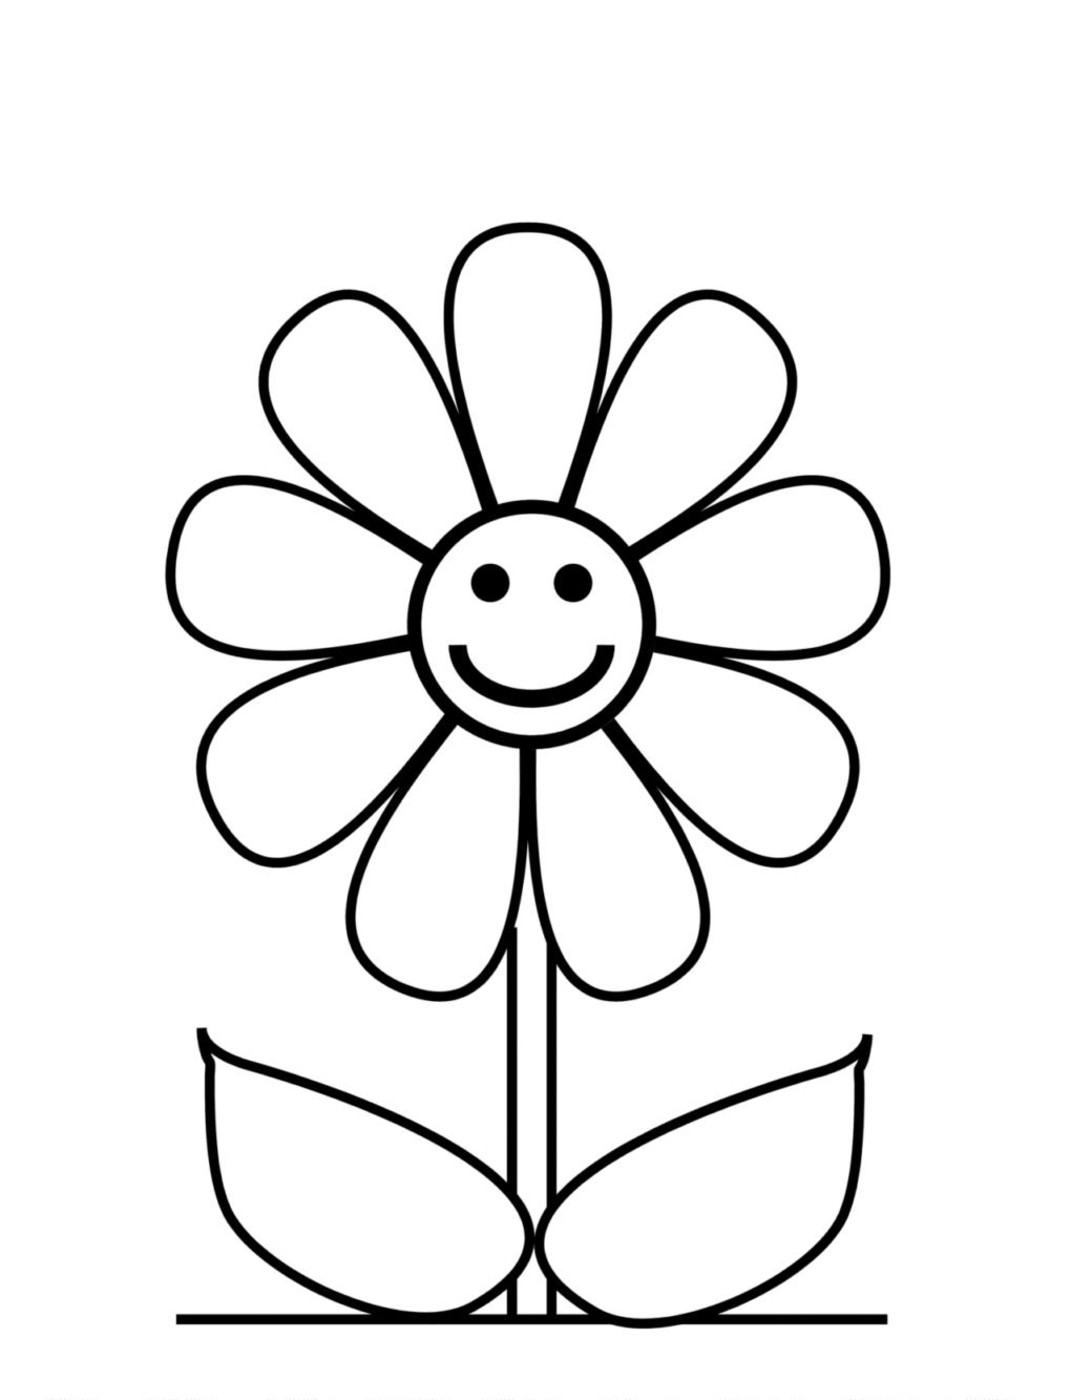 images of flowers to color free easy to print flower coloring pages tulamama images to of color flowers